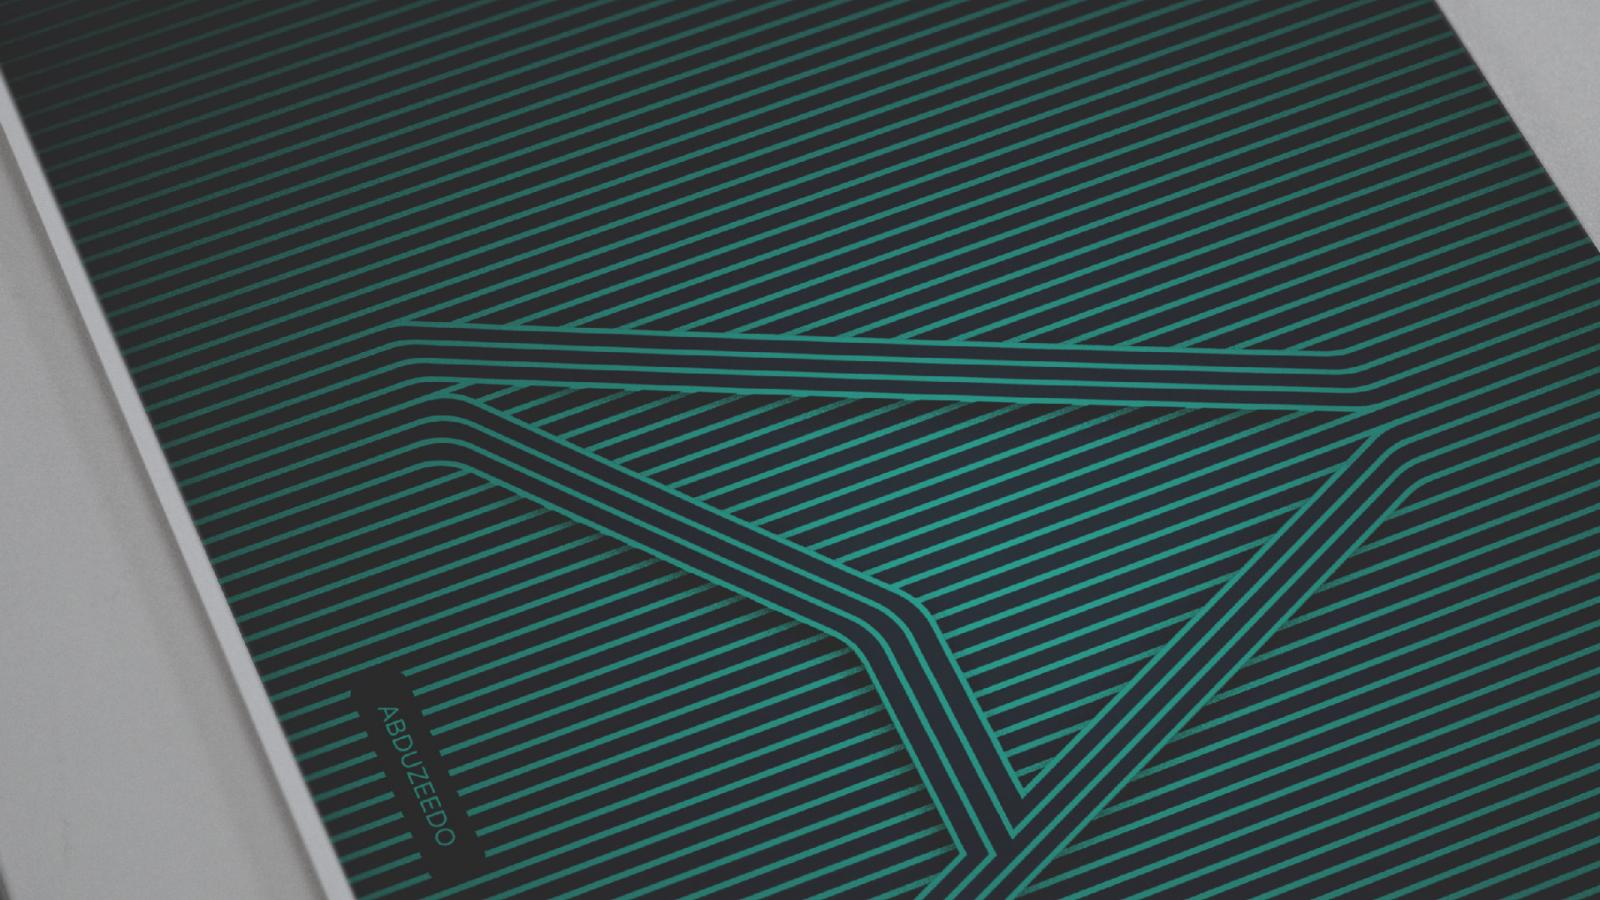 Playing with Lines in Photoshop and Illustrator Tutorials